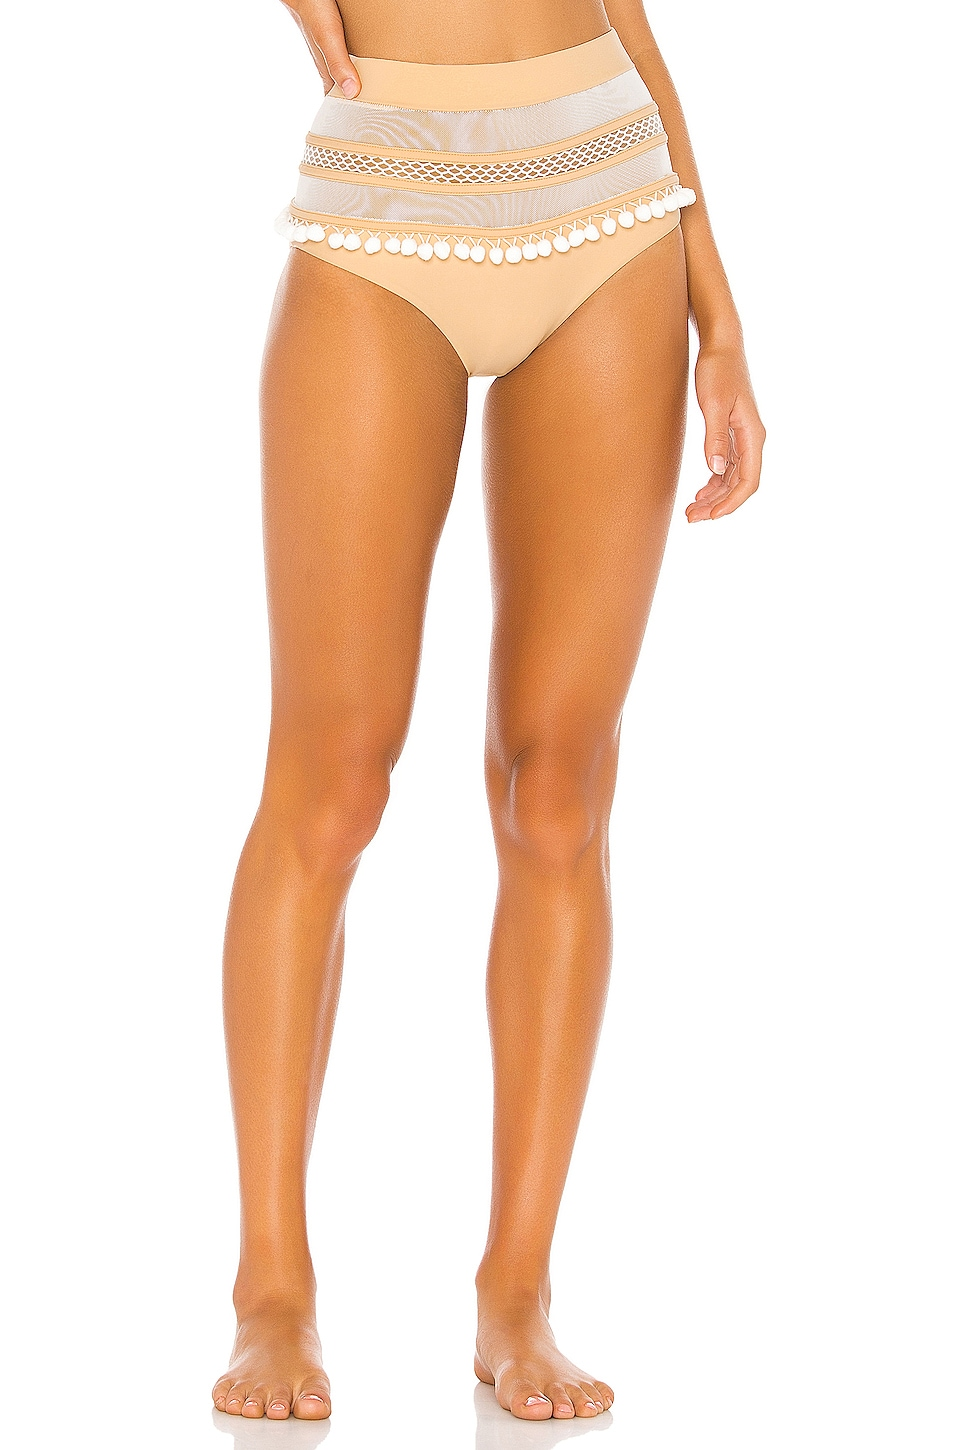 Tularosa Thessy Bottom in Nude